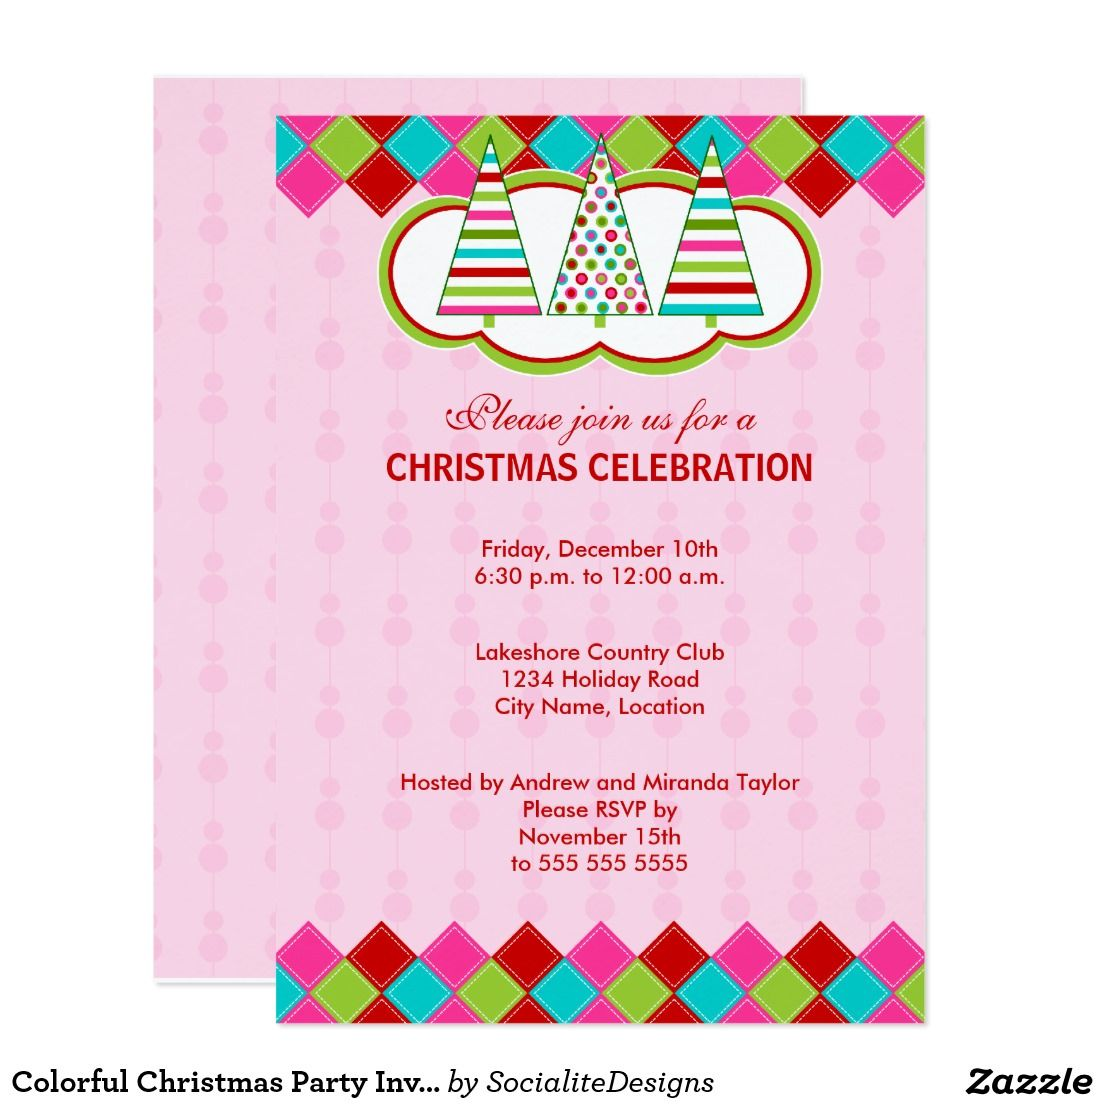 Colorful Christmas Party Invitation | Christmas Party Invitations ...